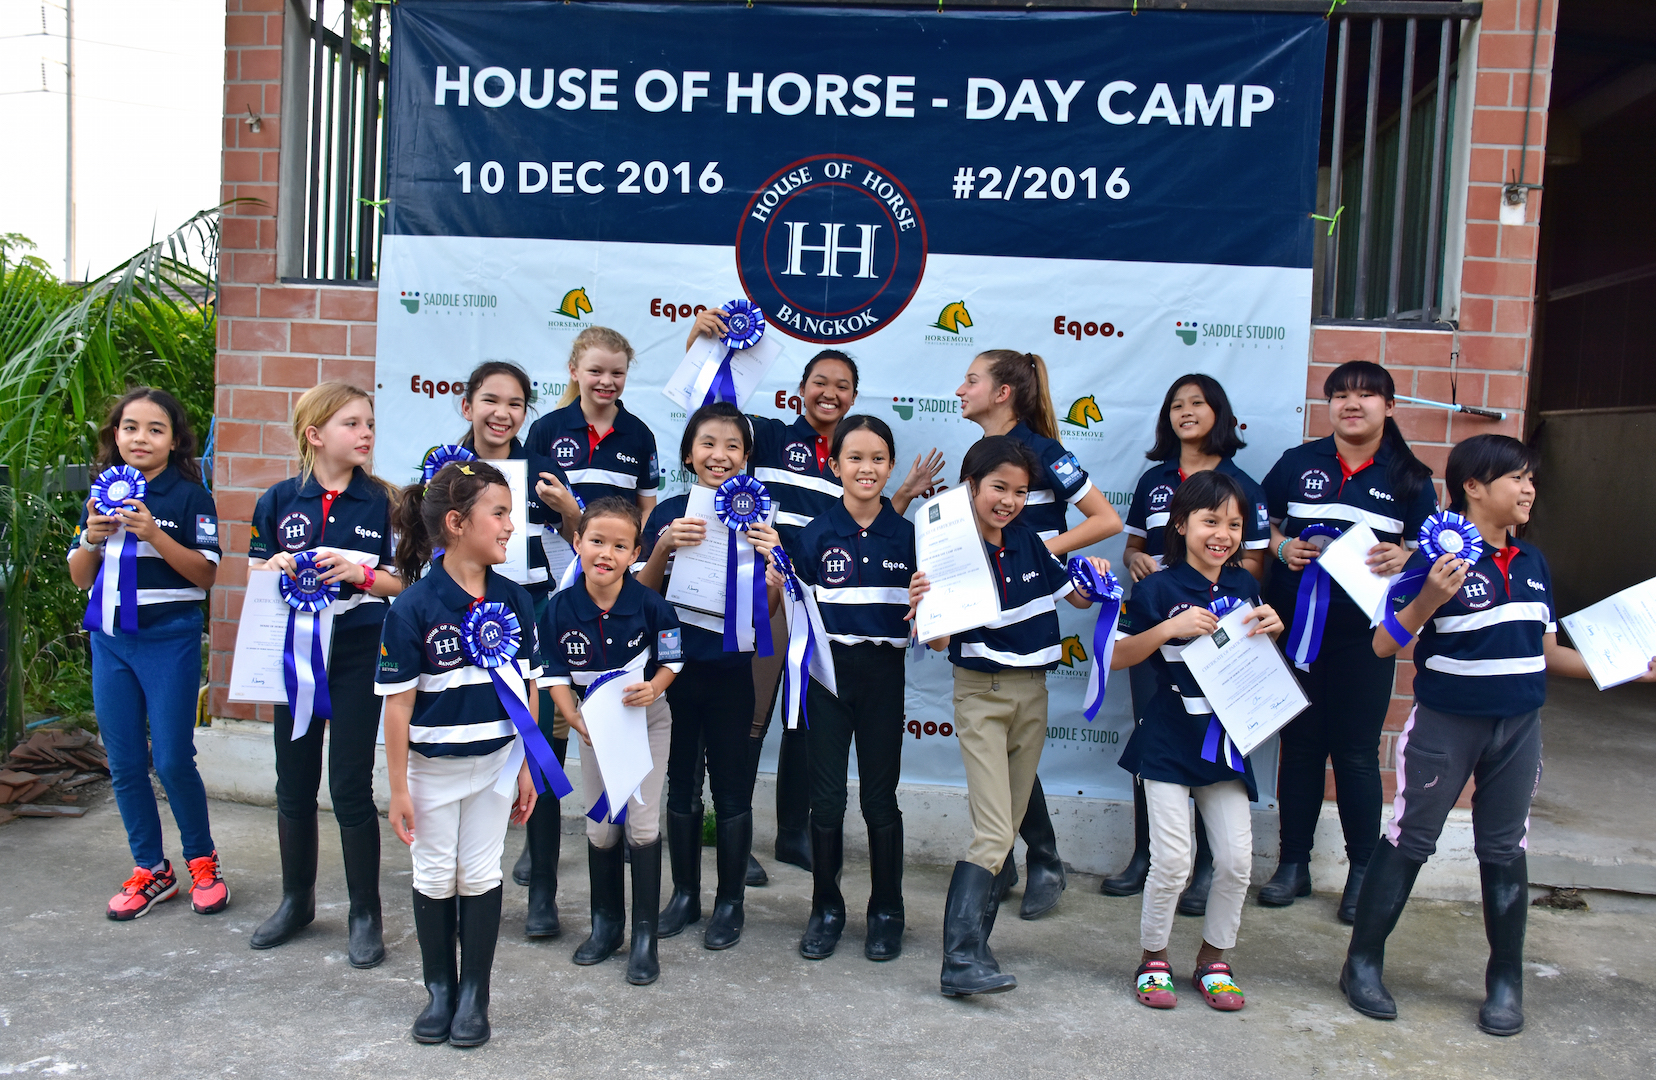 Youth Riders at HOUSE OF HORSE